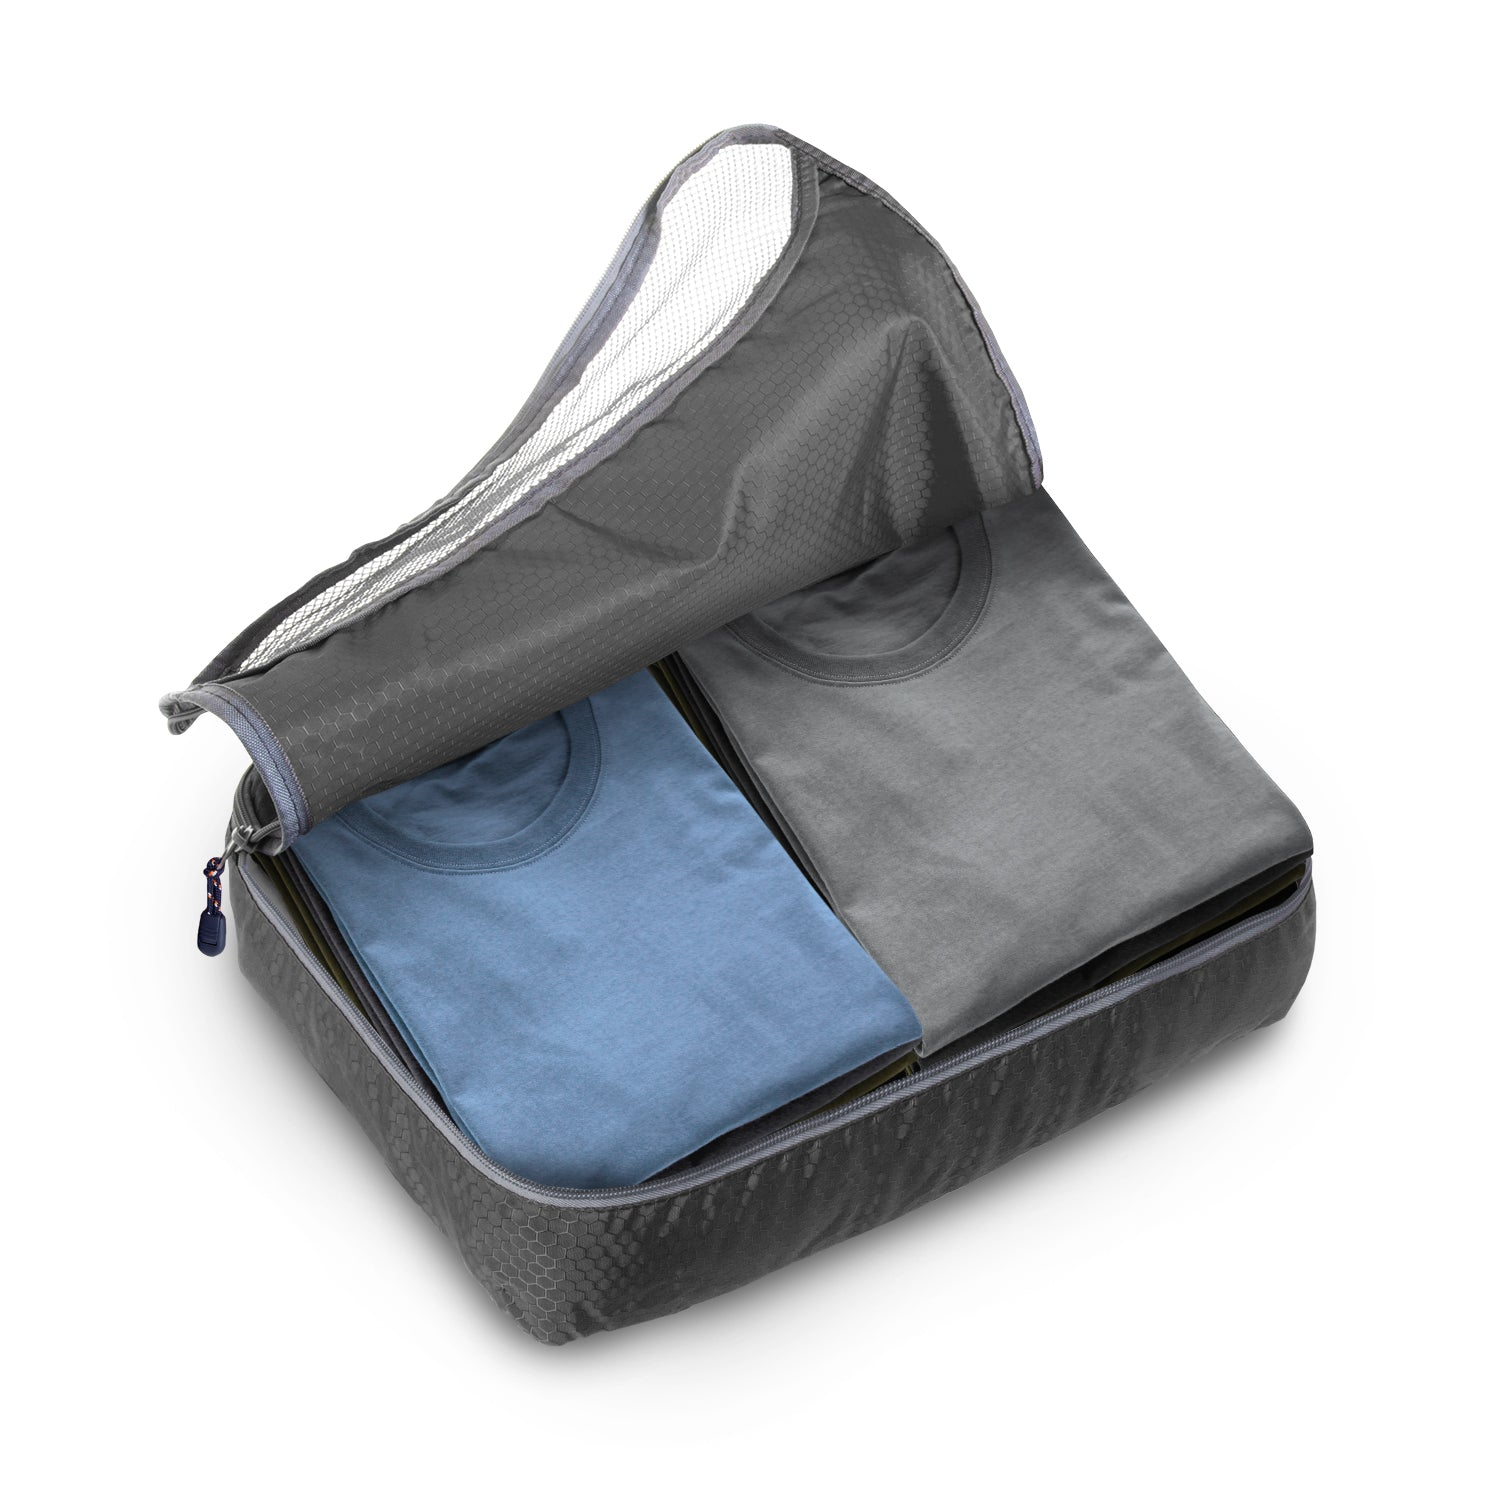 Packing Cube 3 Piece - Grey - globite